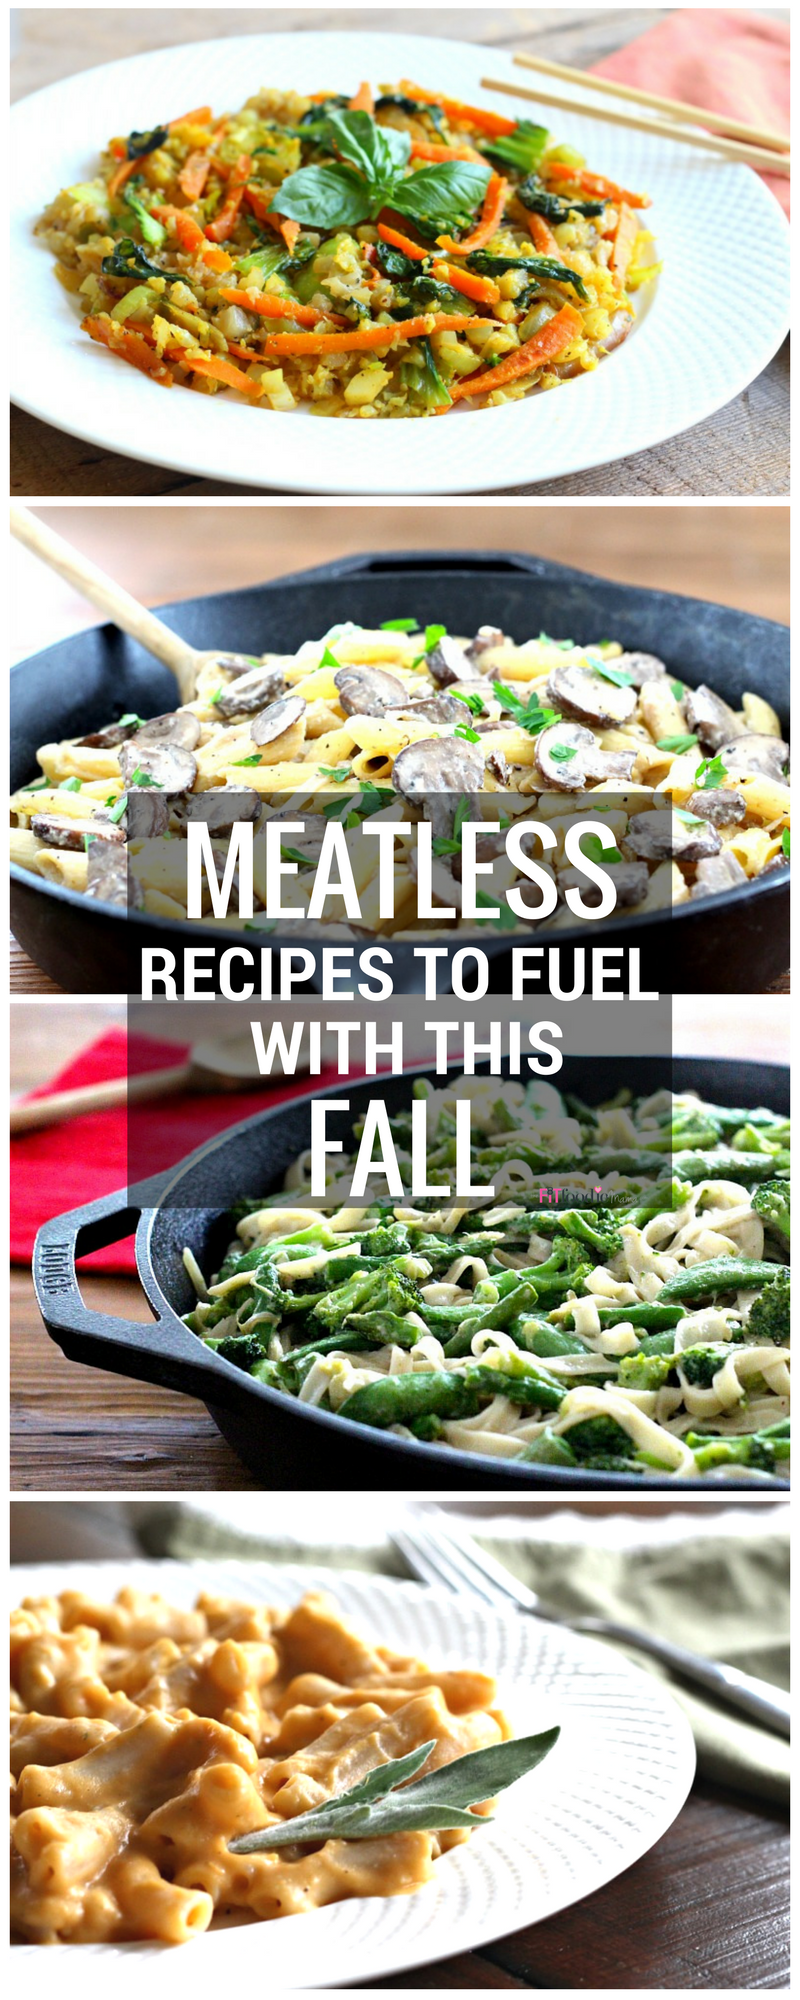 Meatless and Gluten Free Dinner and Lunch Recipes to Fuel with this Fall